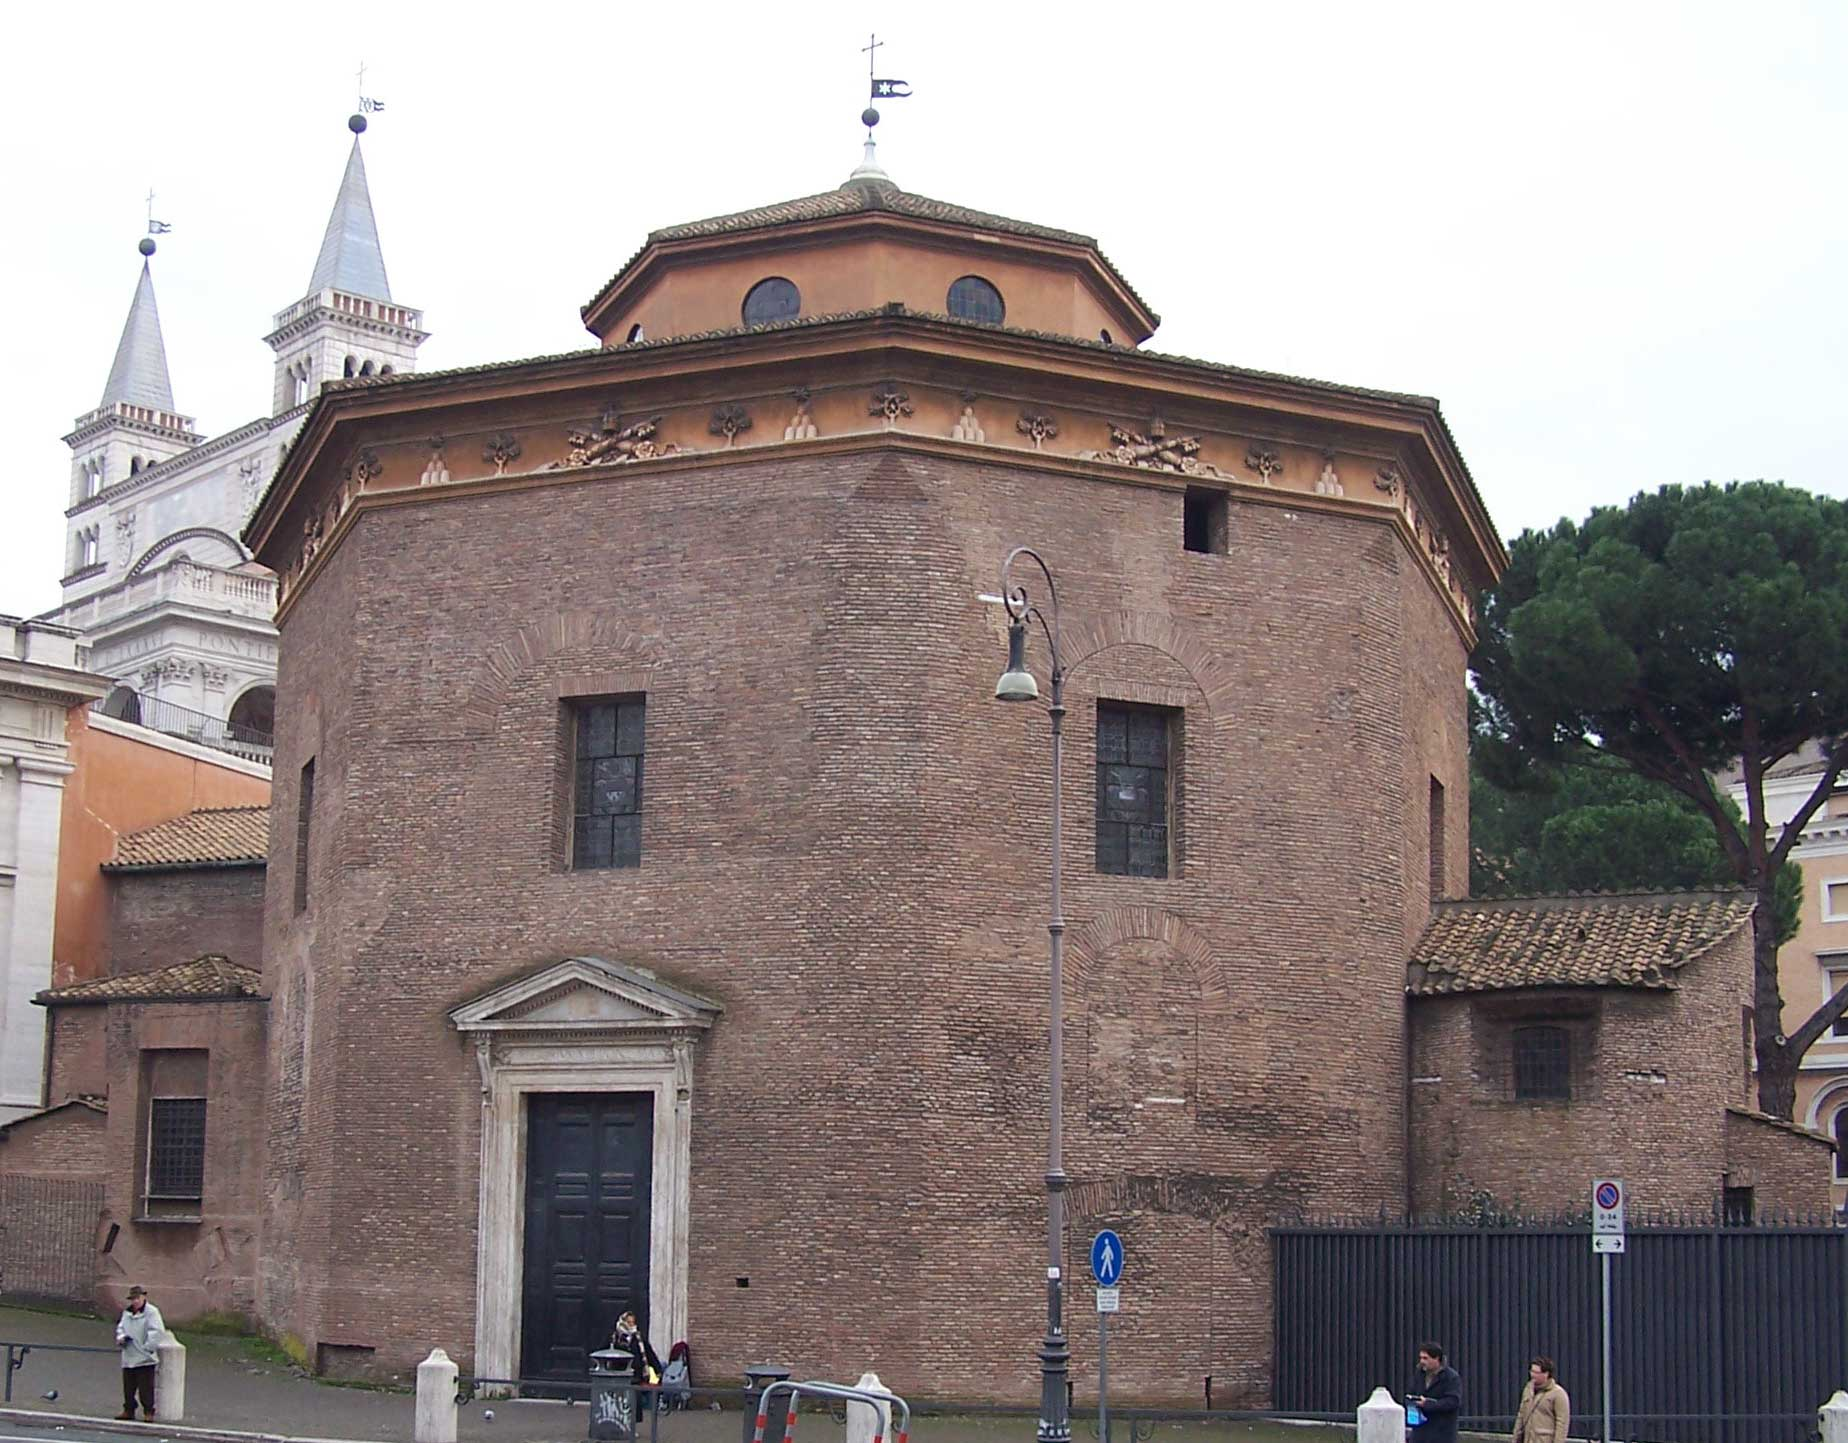 Battistero S.Giovanni in Laterano